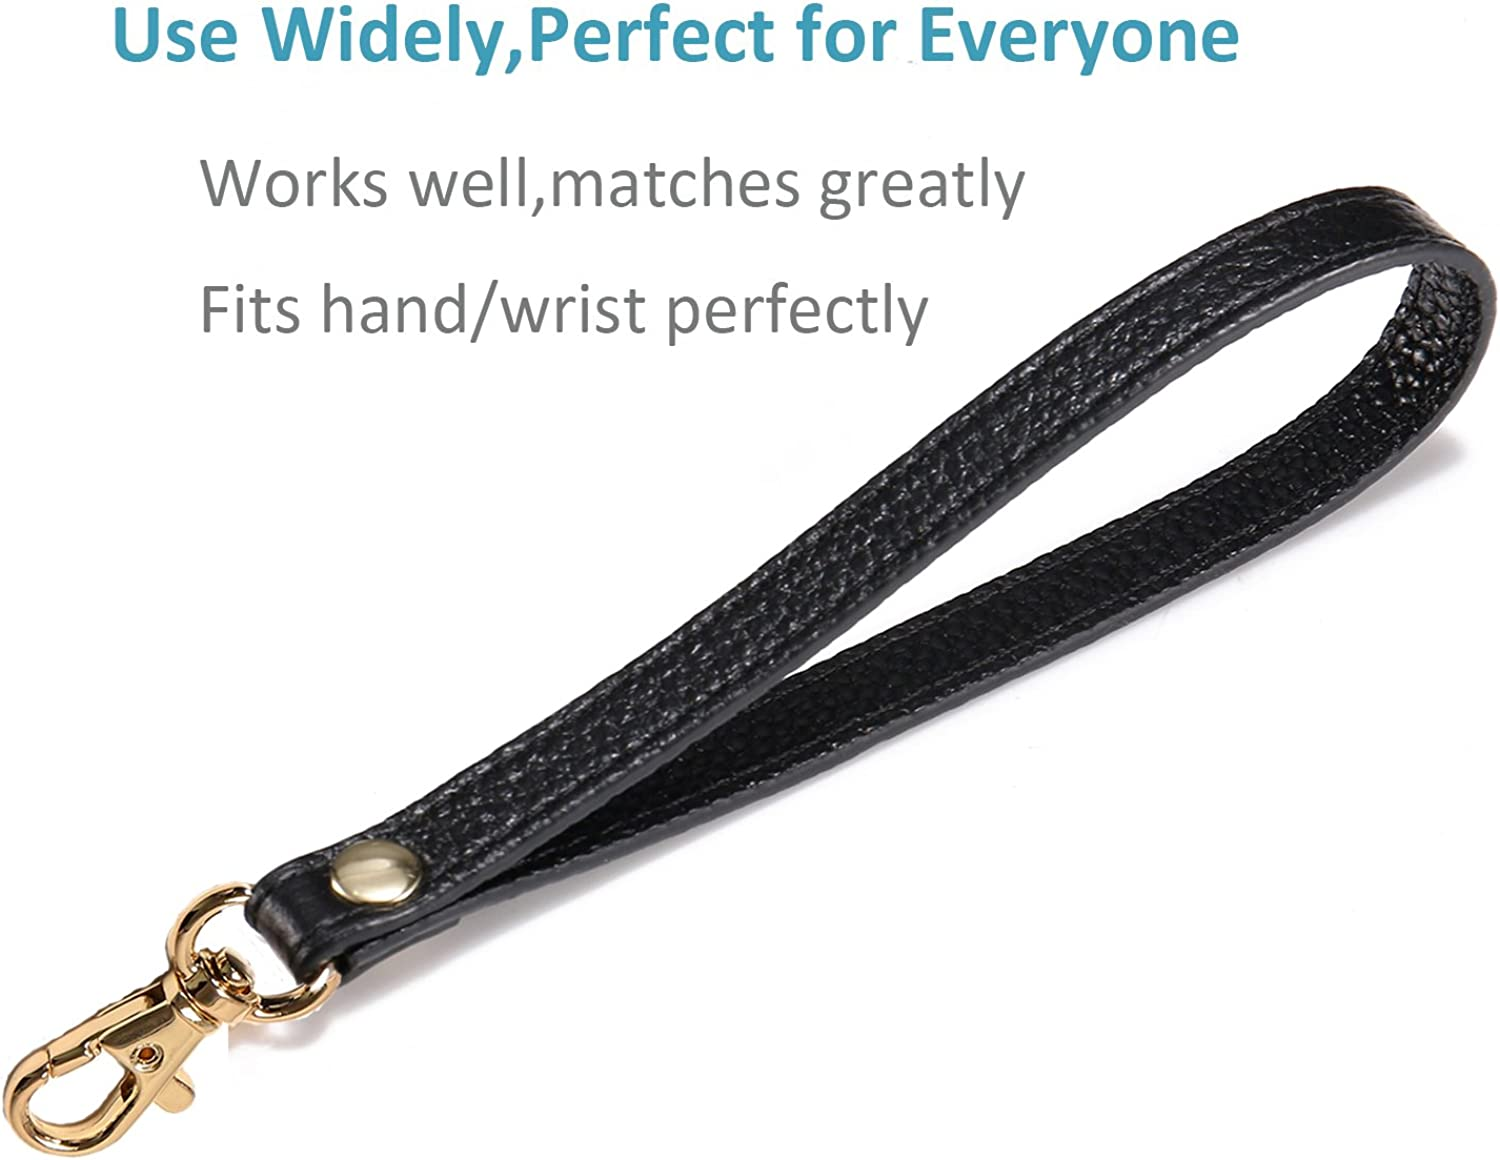 Leather Wristlet Strap Genuine Leather Hand Strap for Wallet Purse Cellphone Clutch Wristlet UTreers Wristlet Strap Keychain